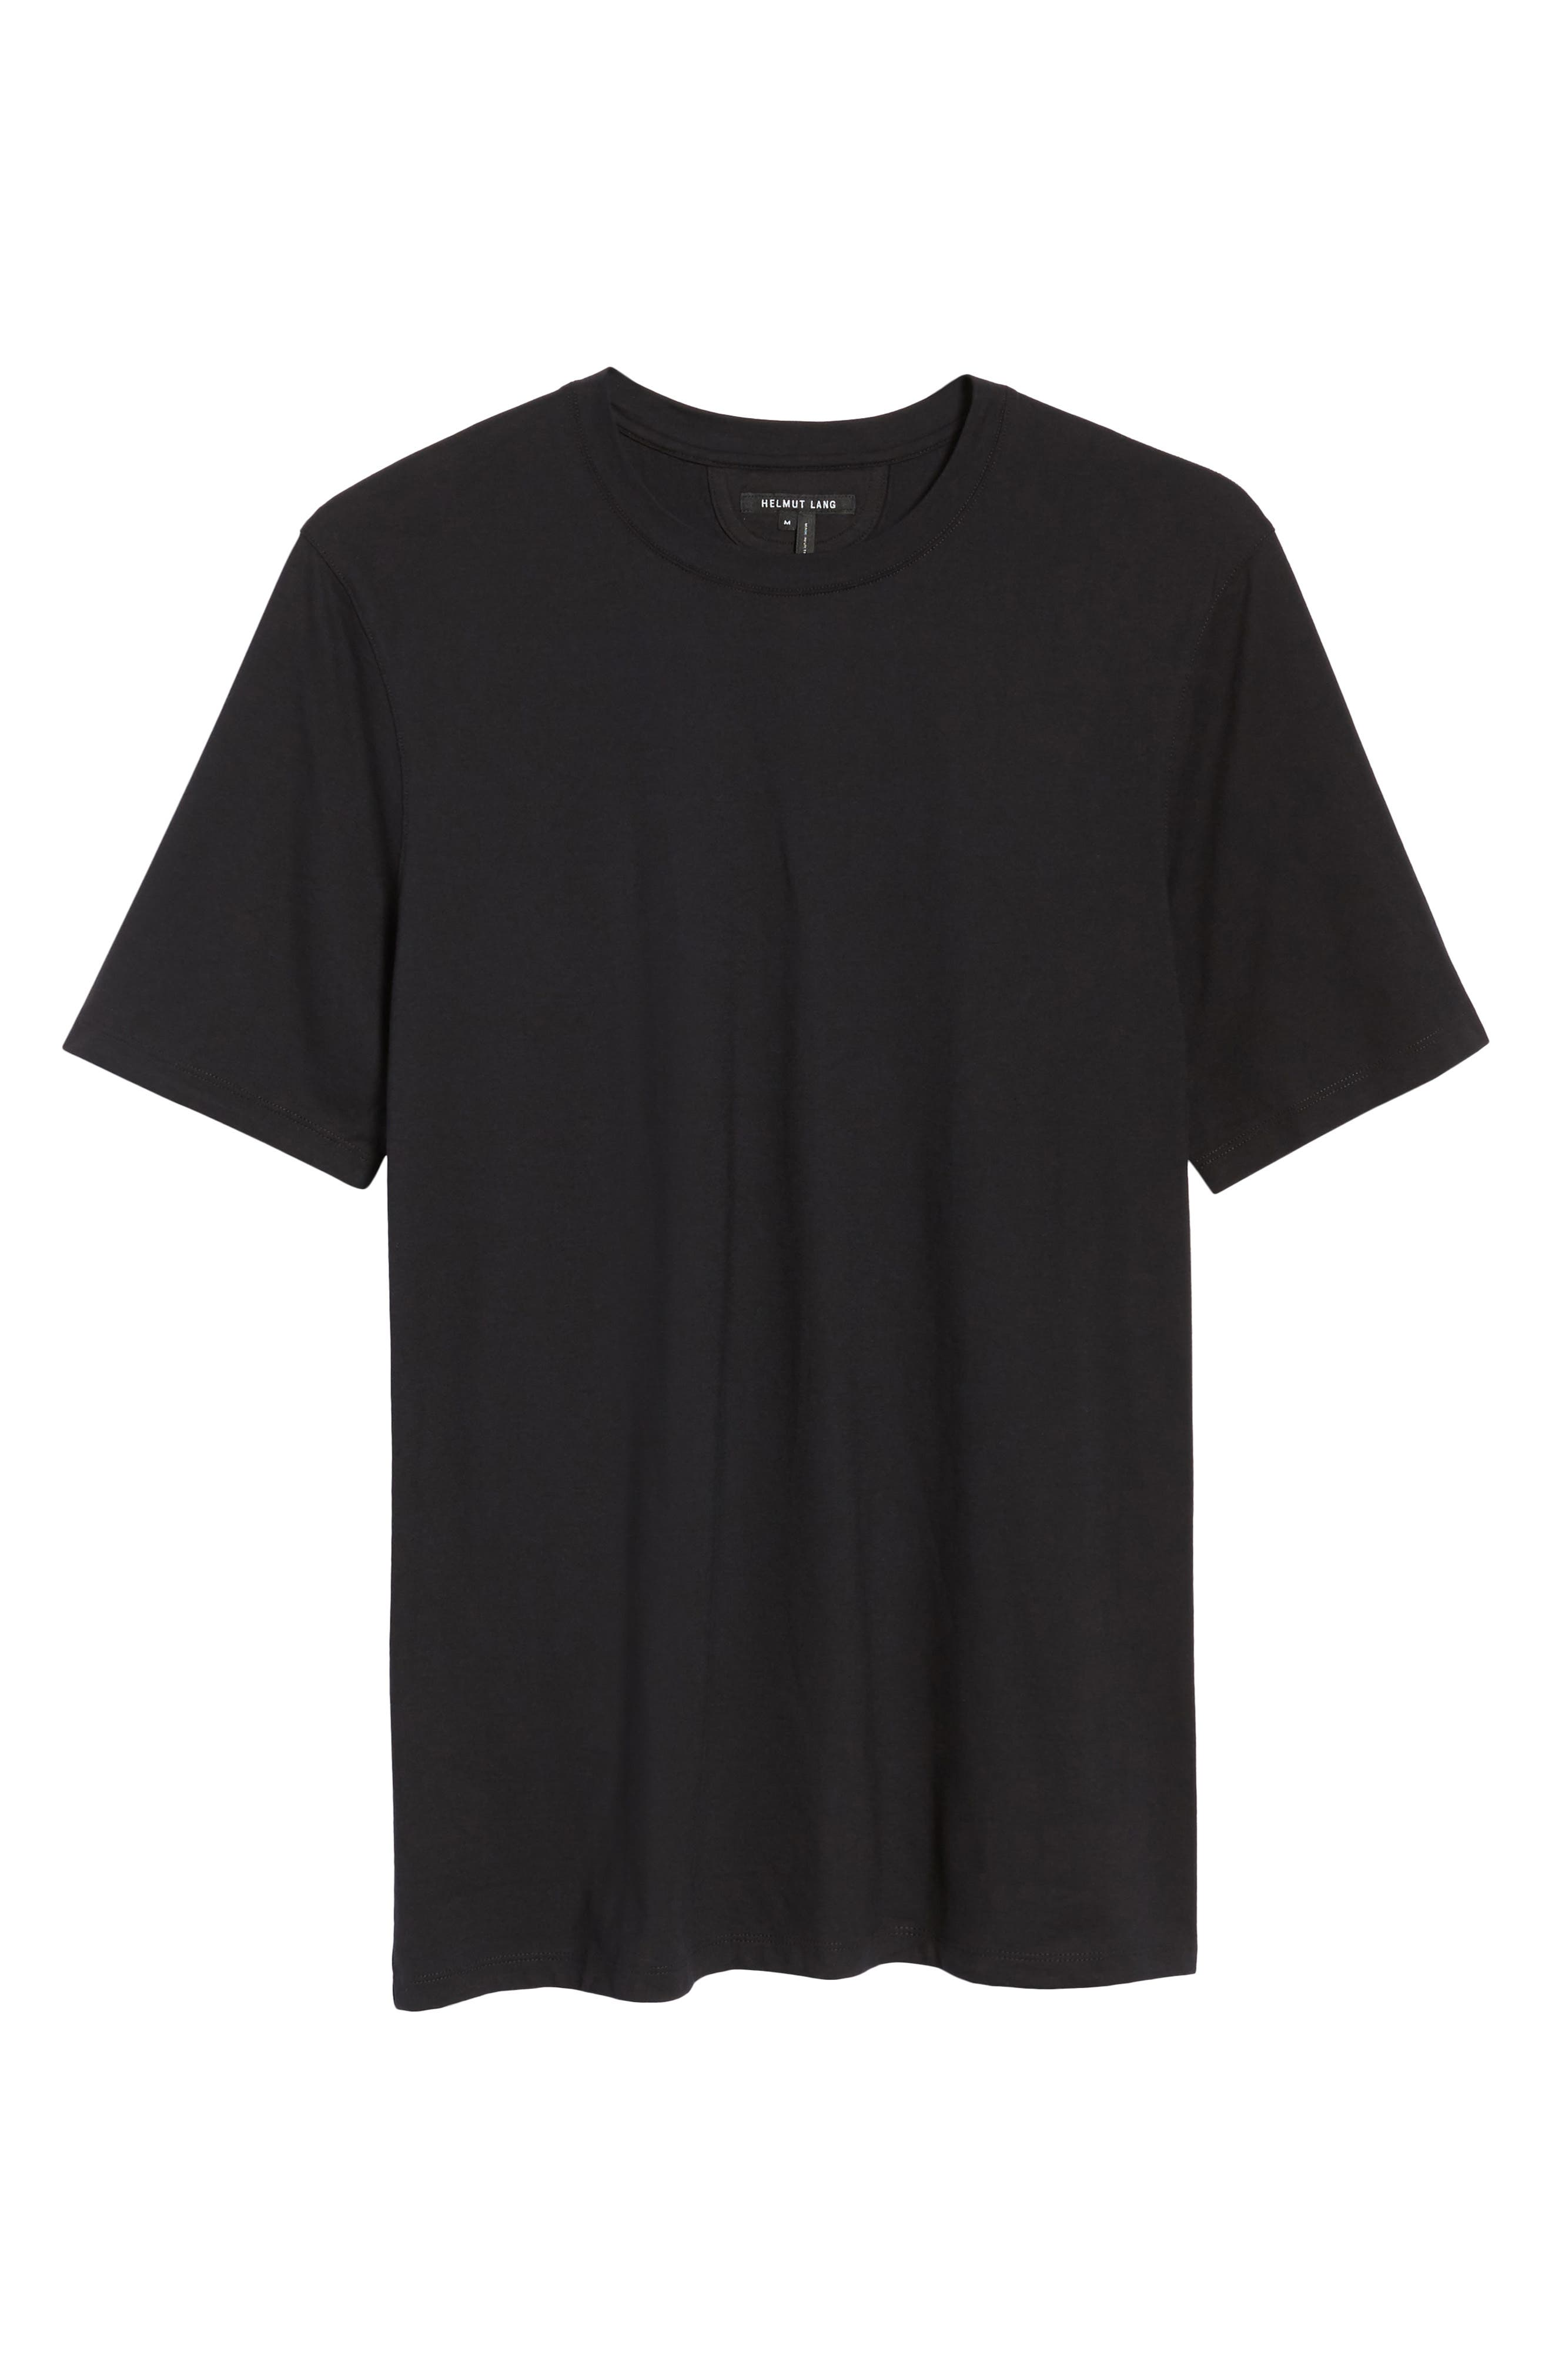 Heritage T-Shirt,                         Main,                         color, 001